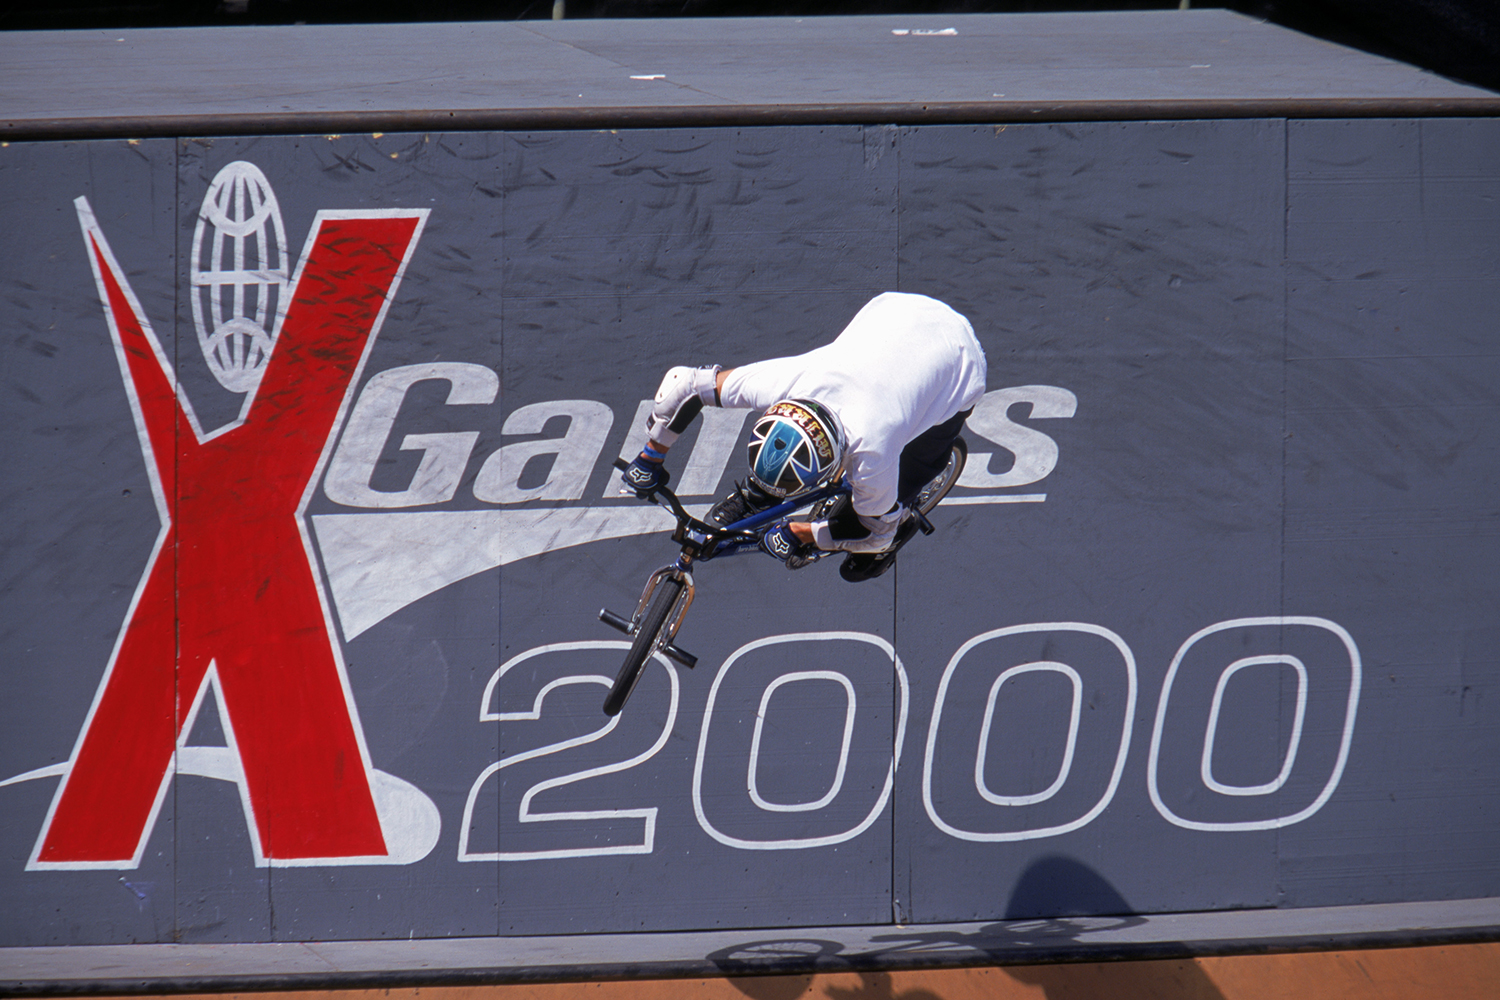 Dave Mirra at X Games in the summer of 2000.